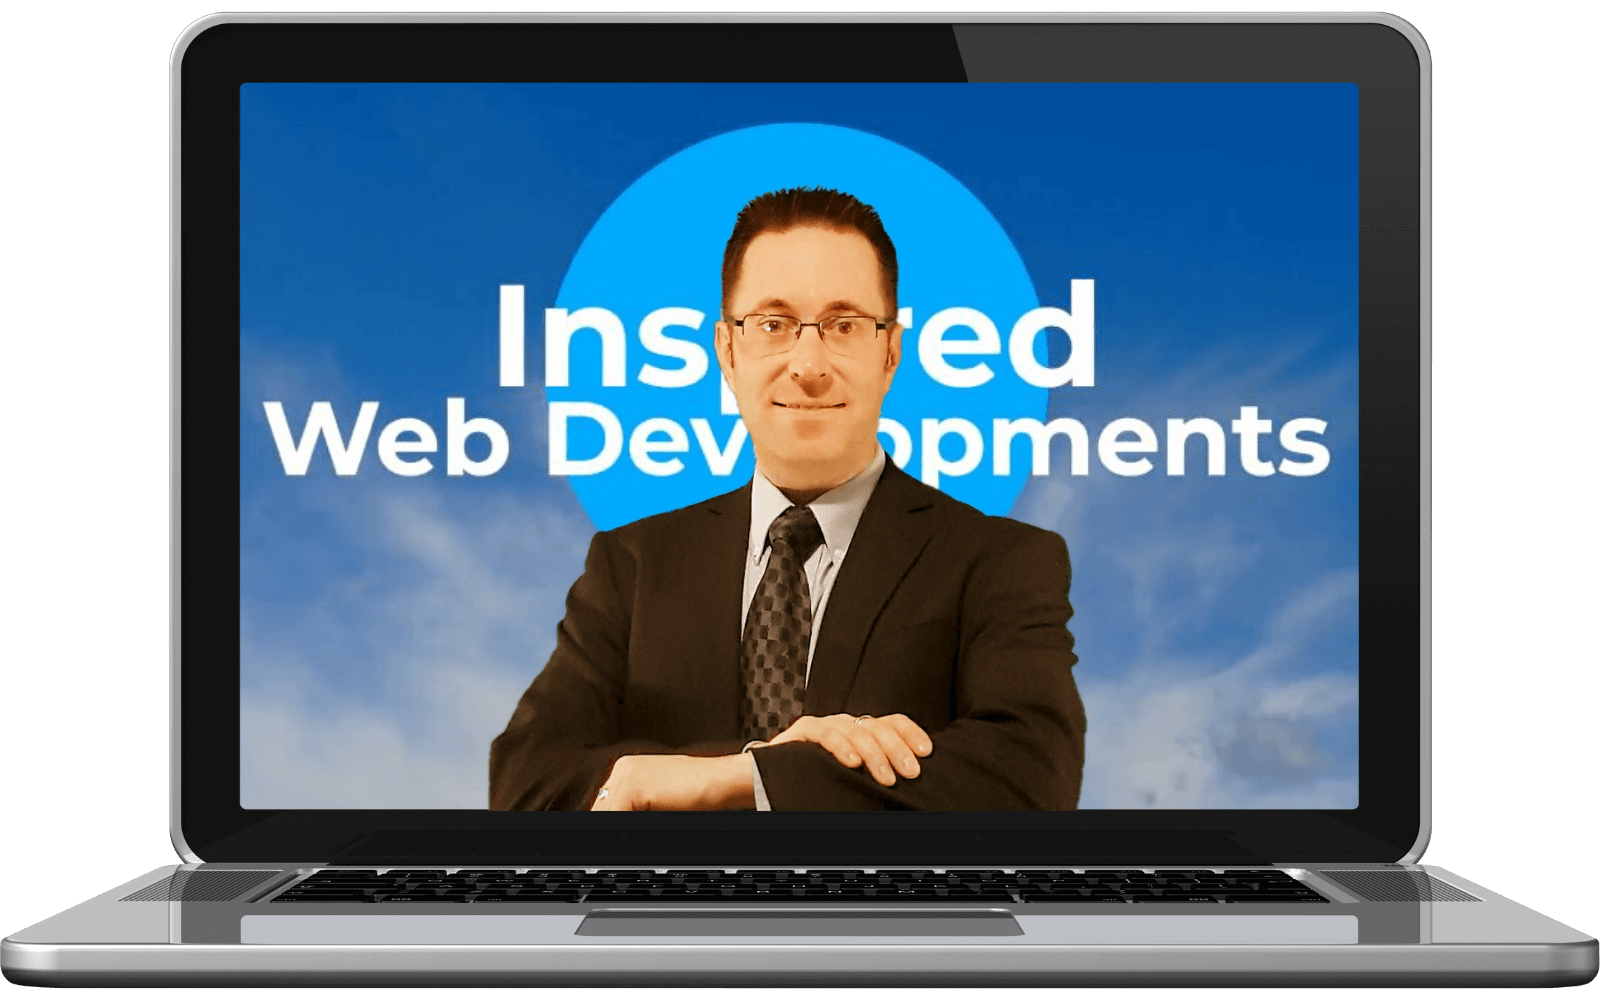 Inspired Web Developments Graphic